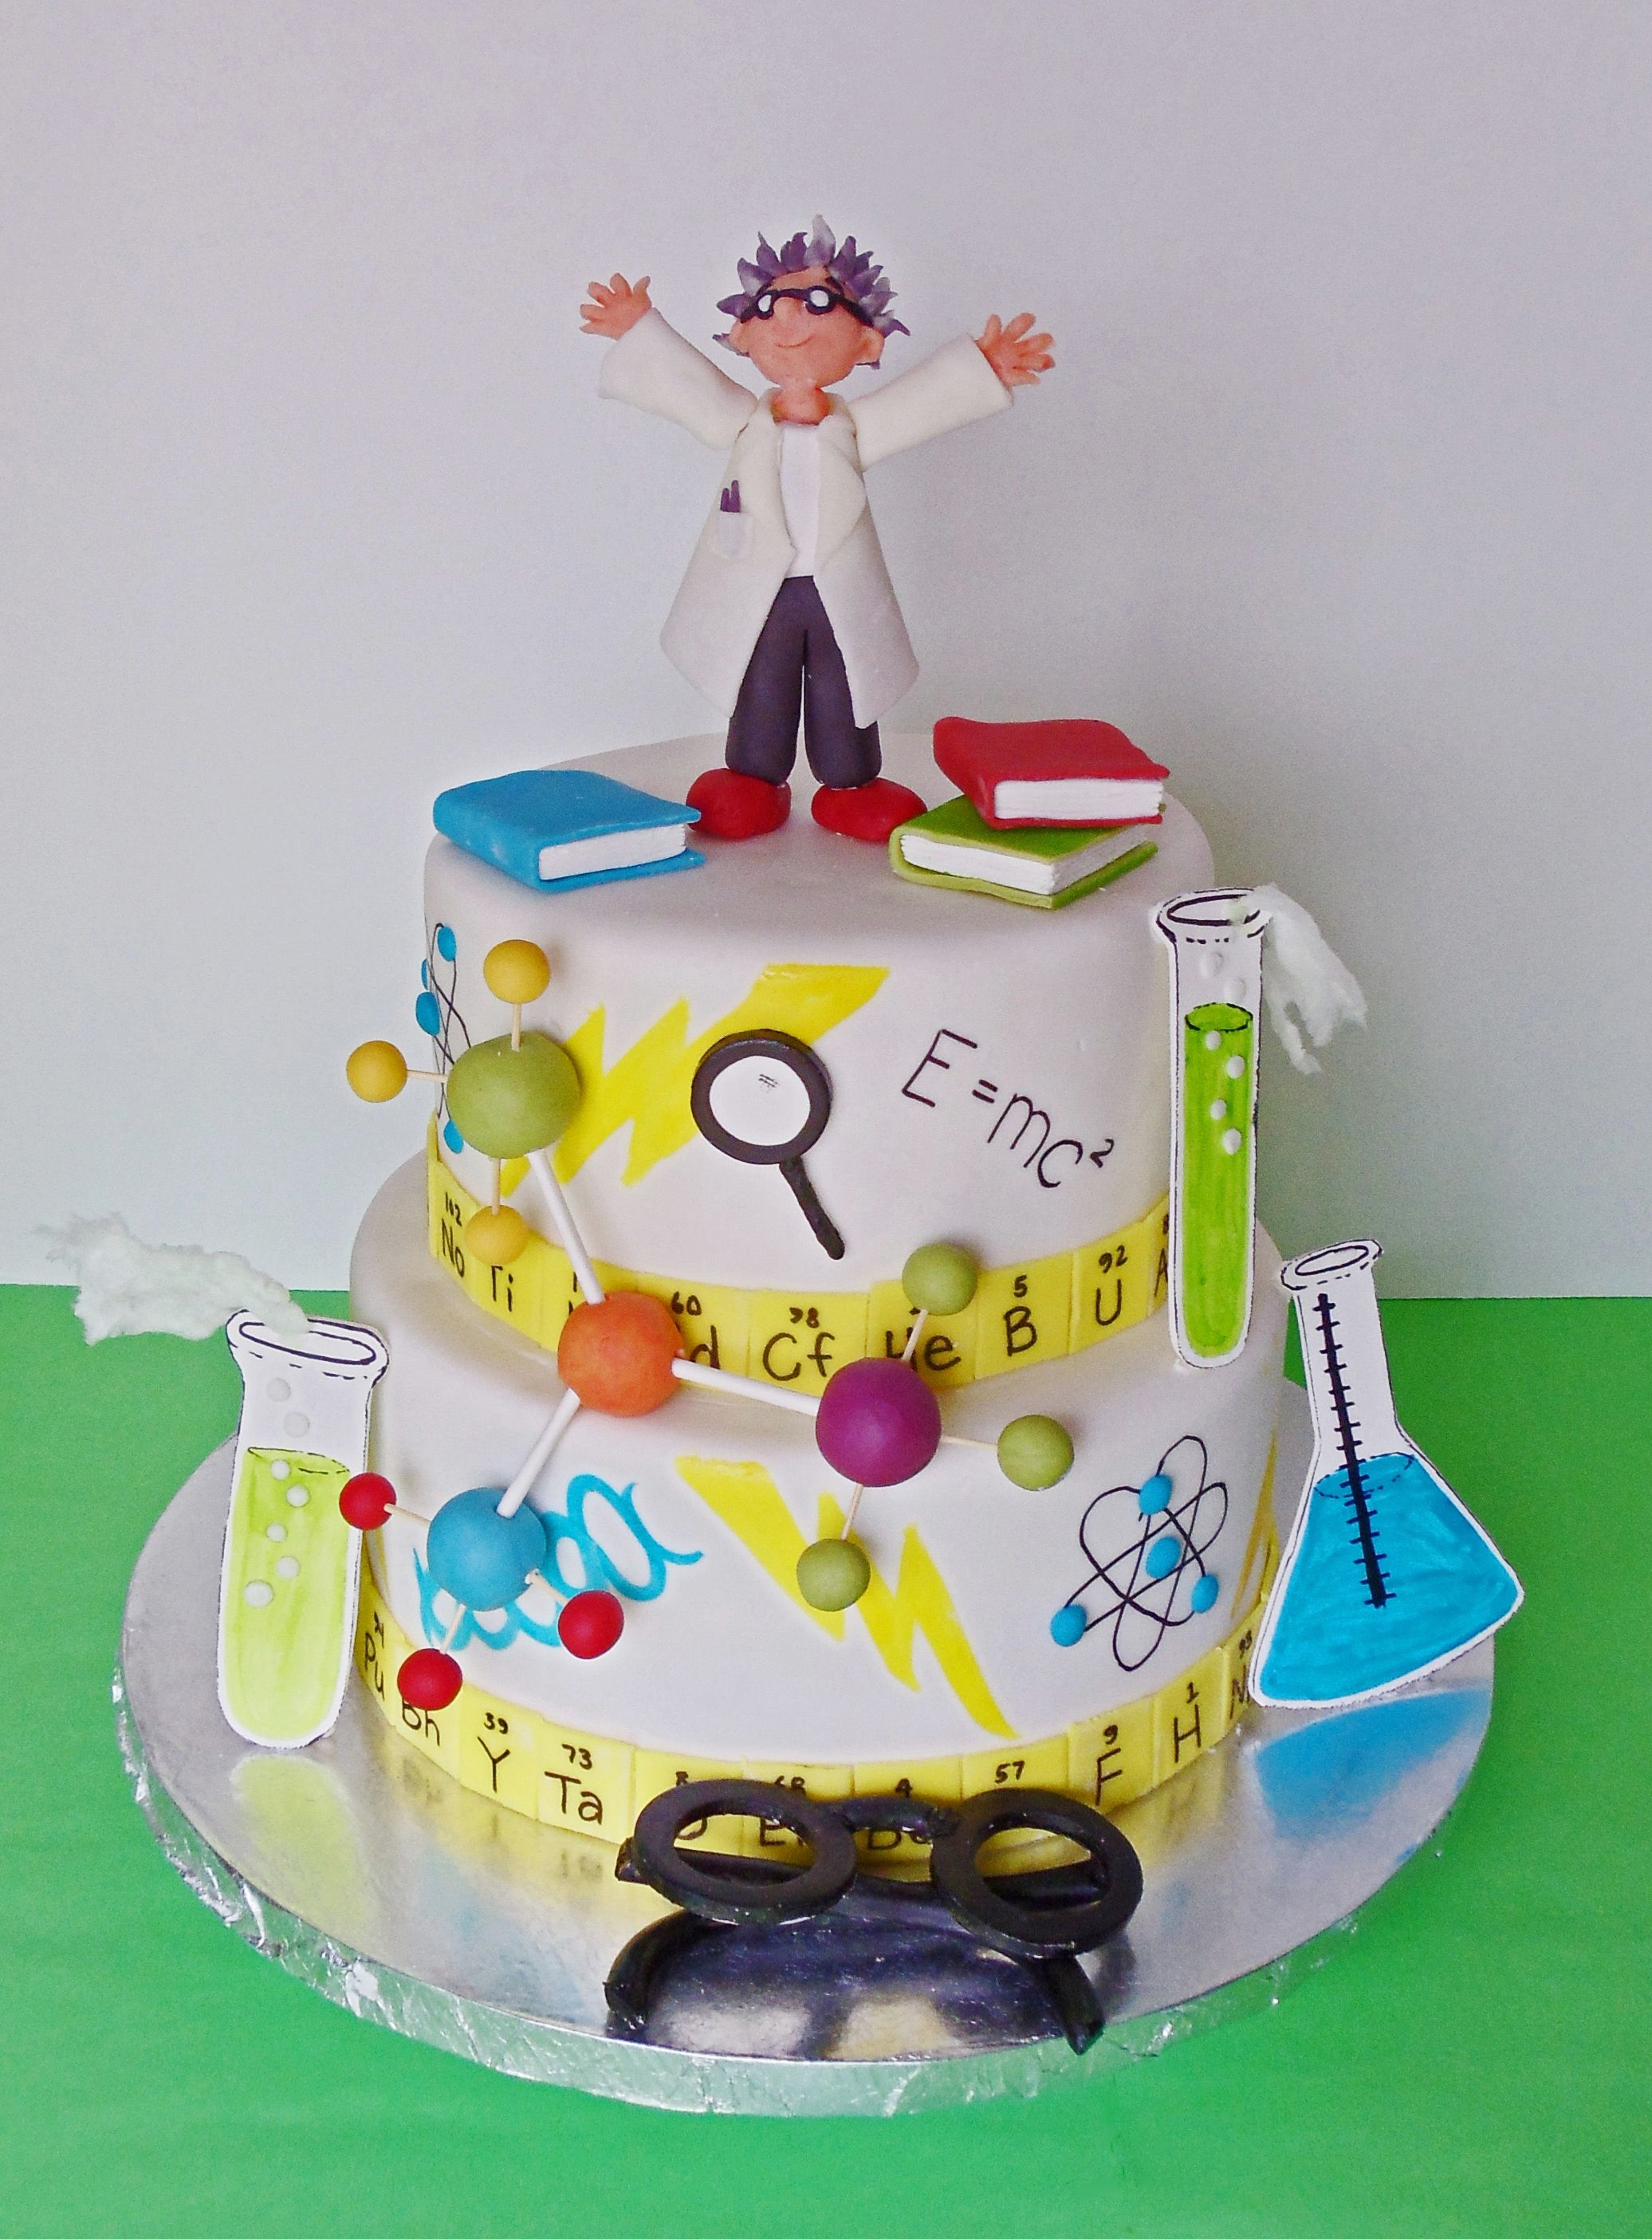 ... Birthday Cake By Anita Auckland Science Cakes Cake on Pinterest